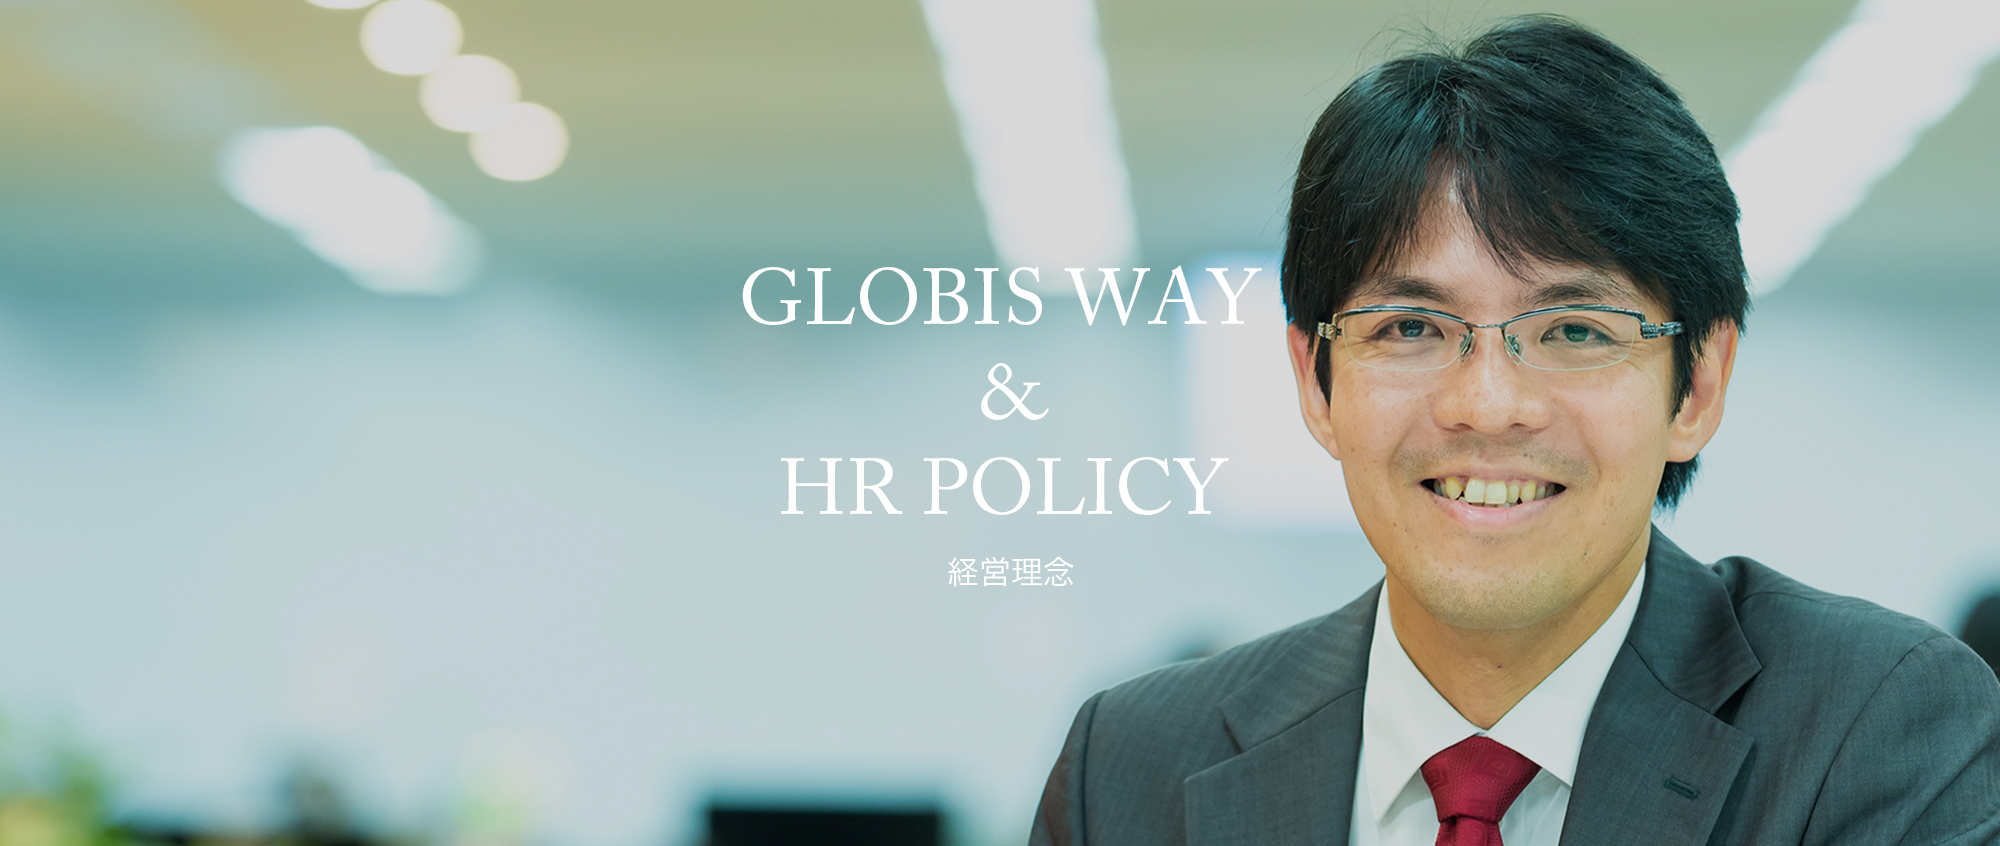 GLOBIS WAY & HR POLICY